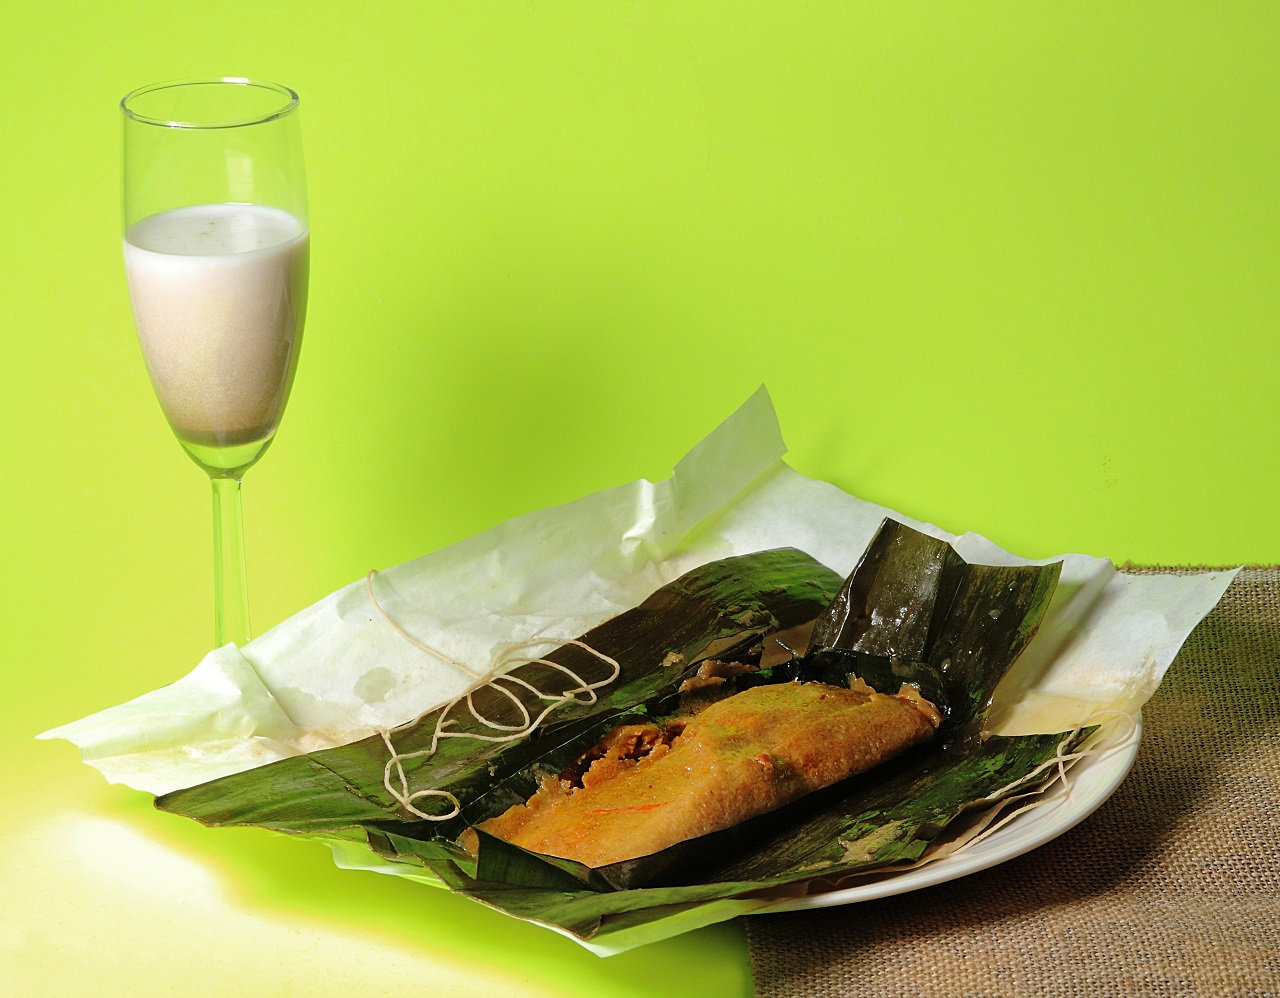 Puerto-Rican-pasteles-and-coconut-liquor-drink